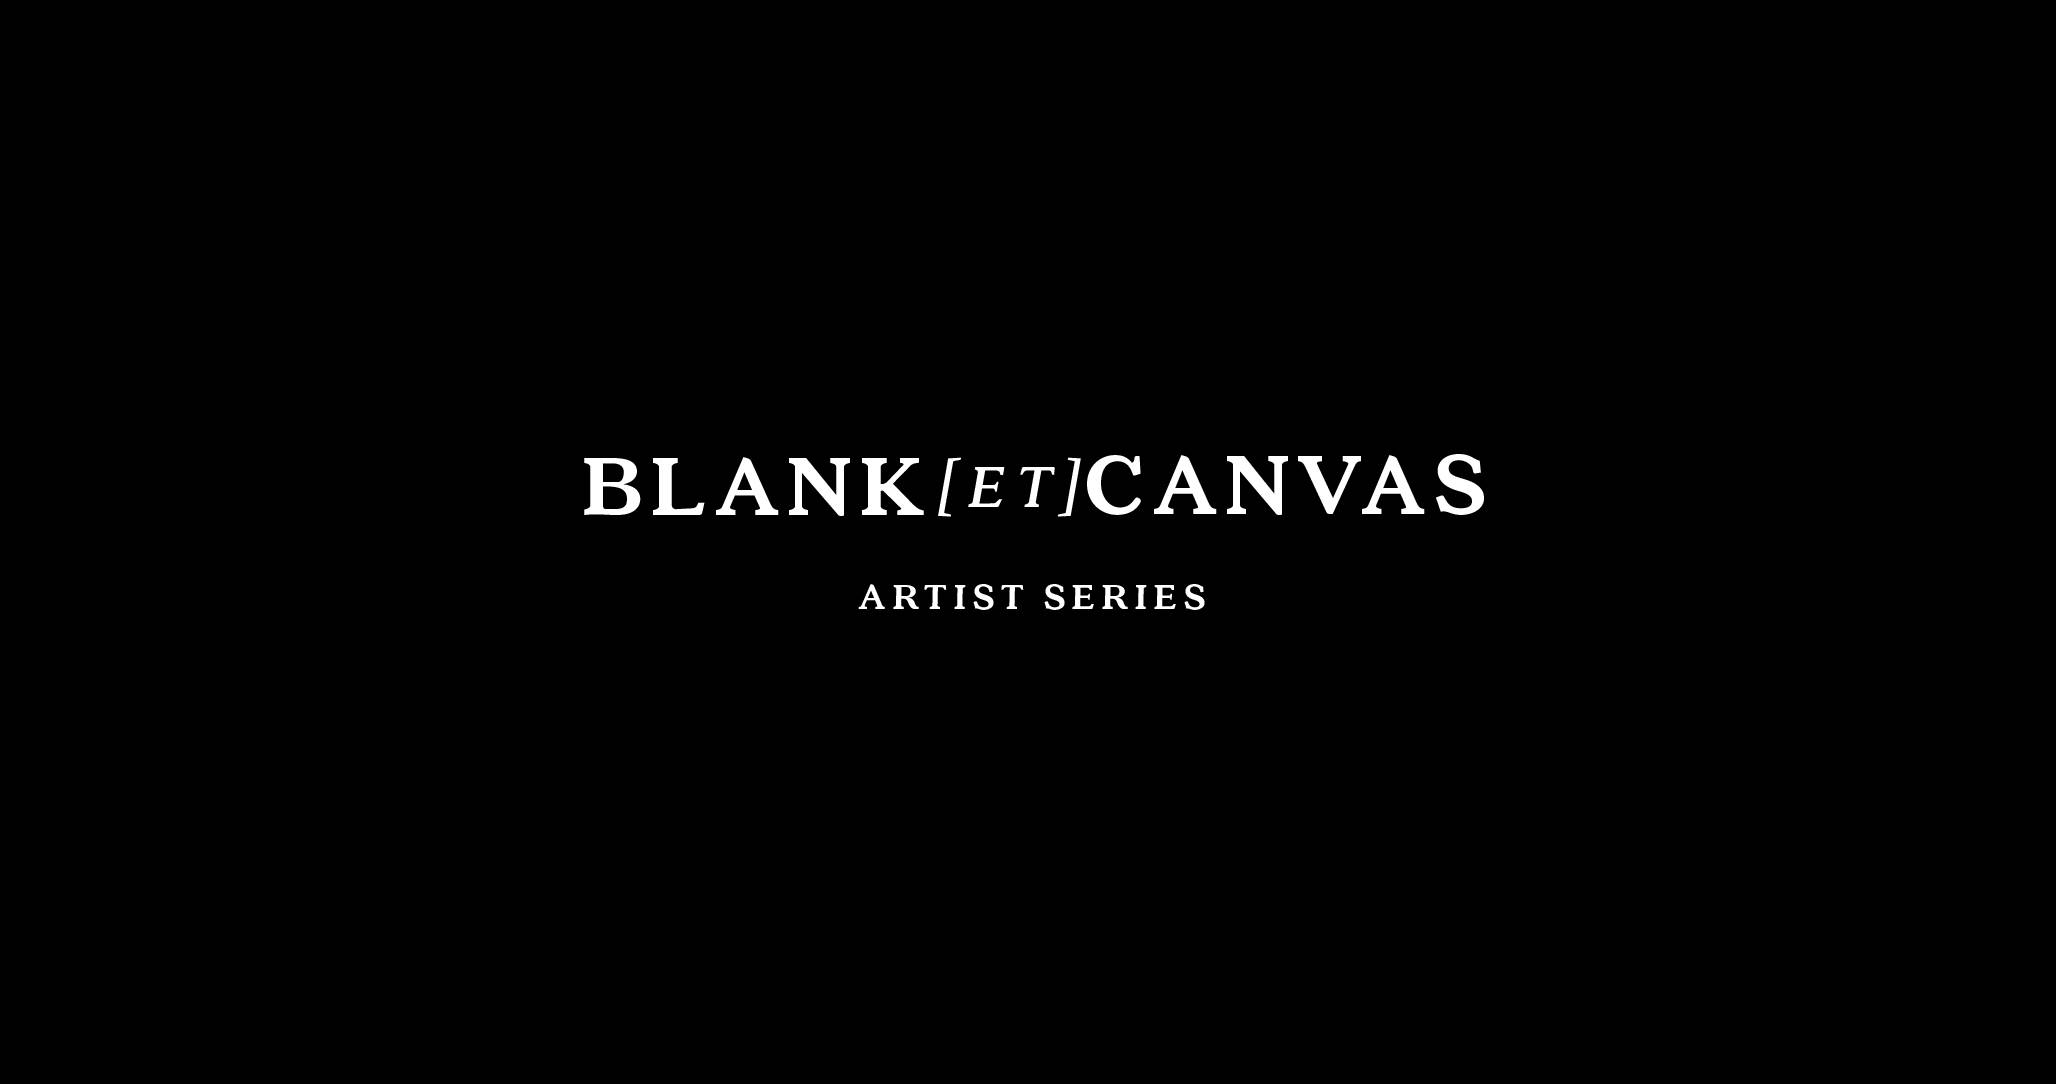 Blank[et] Canvas